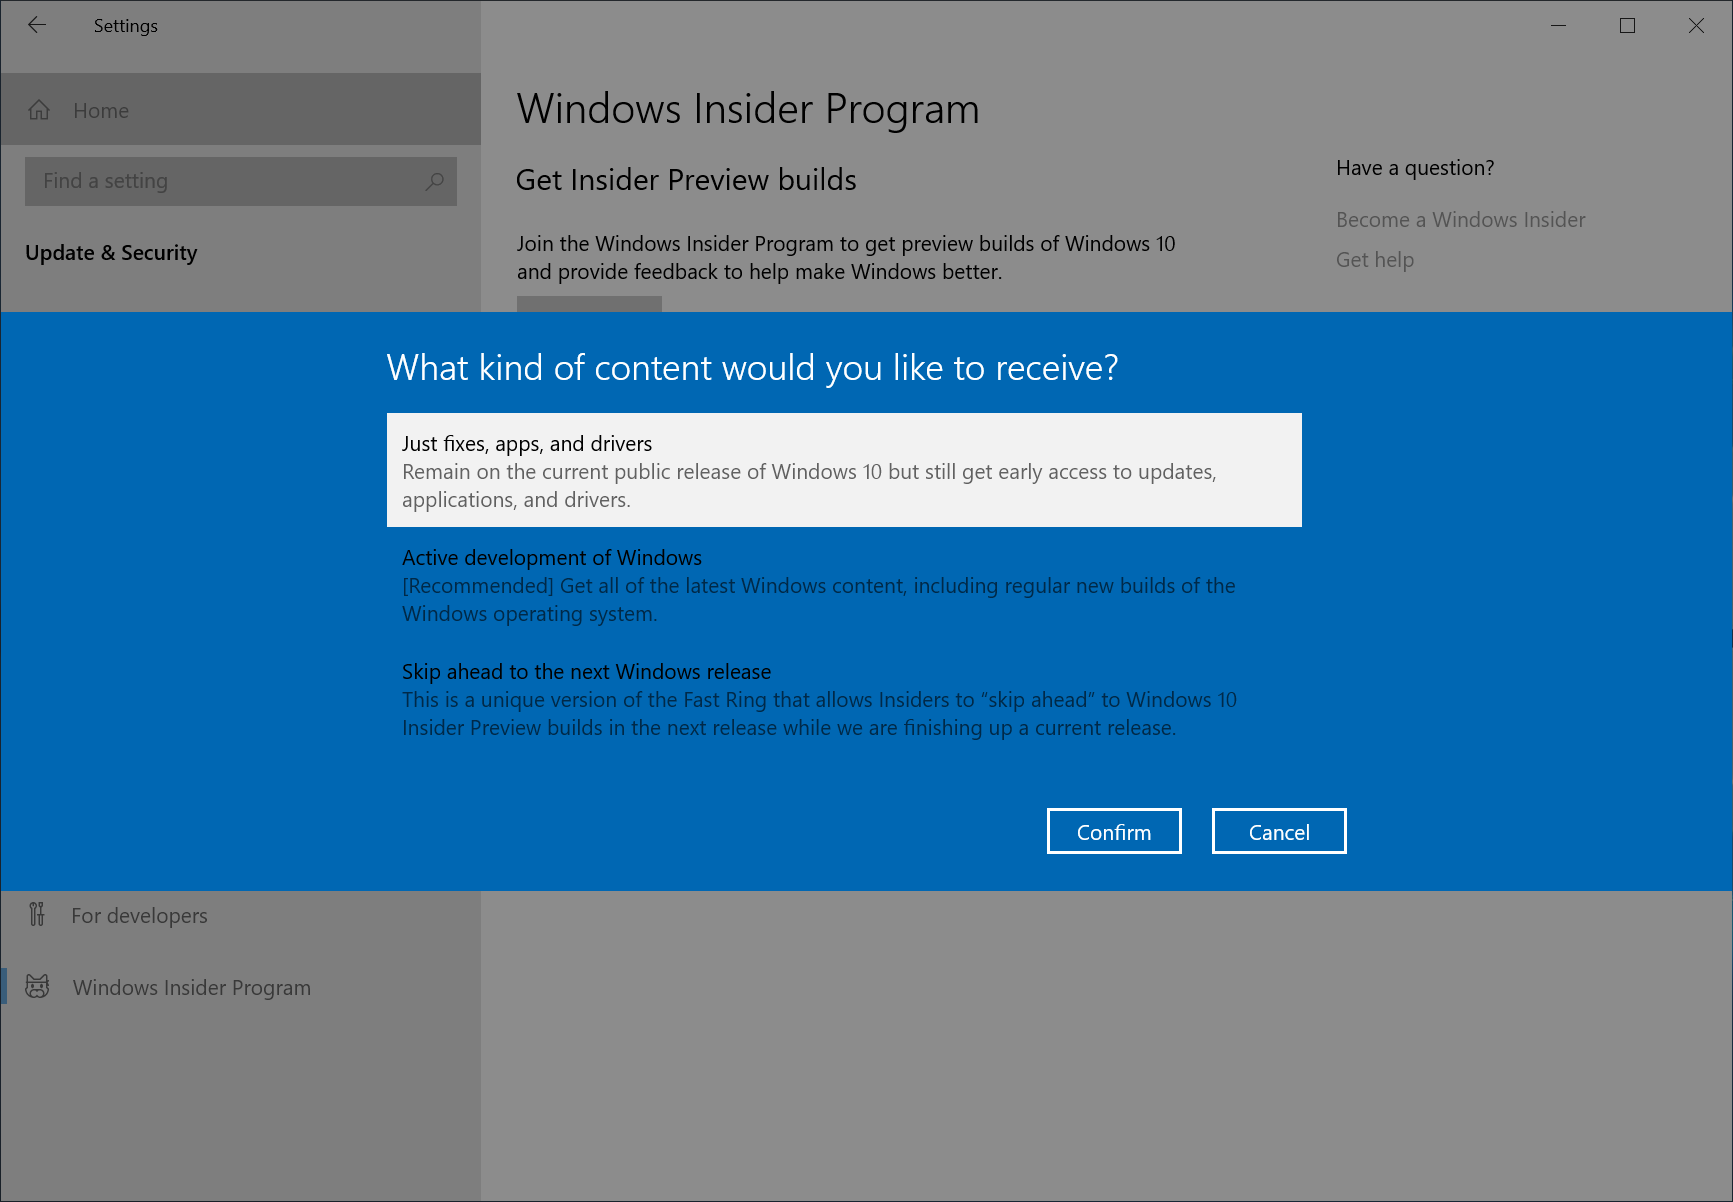 Getting the November 2019 Update Ready for Release  Insider 2ea5c577bdcfe2d55873bba61ff65c9f.png